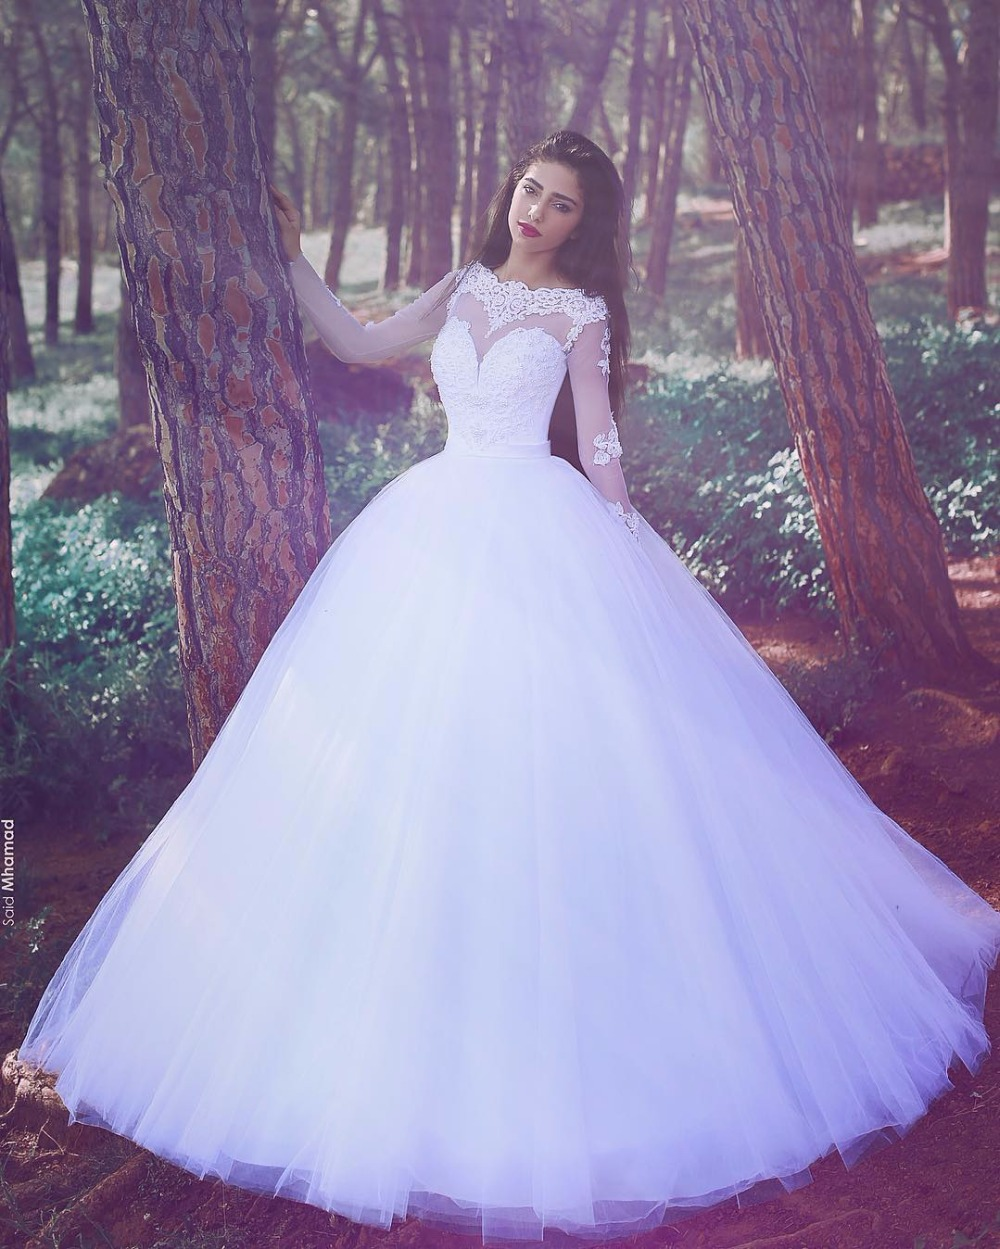 Unique Wedding Dress: Online Buy Wholesale Unique Wedding Dress From China